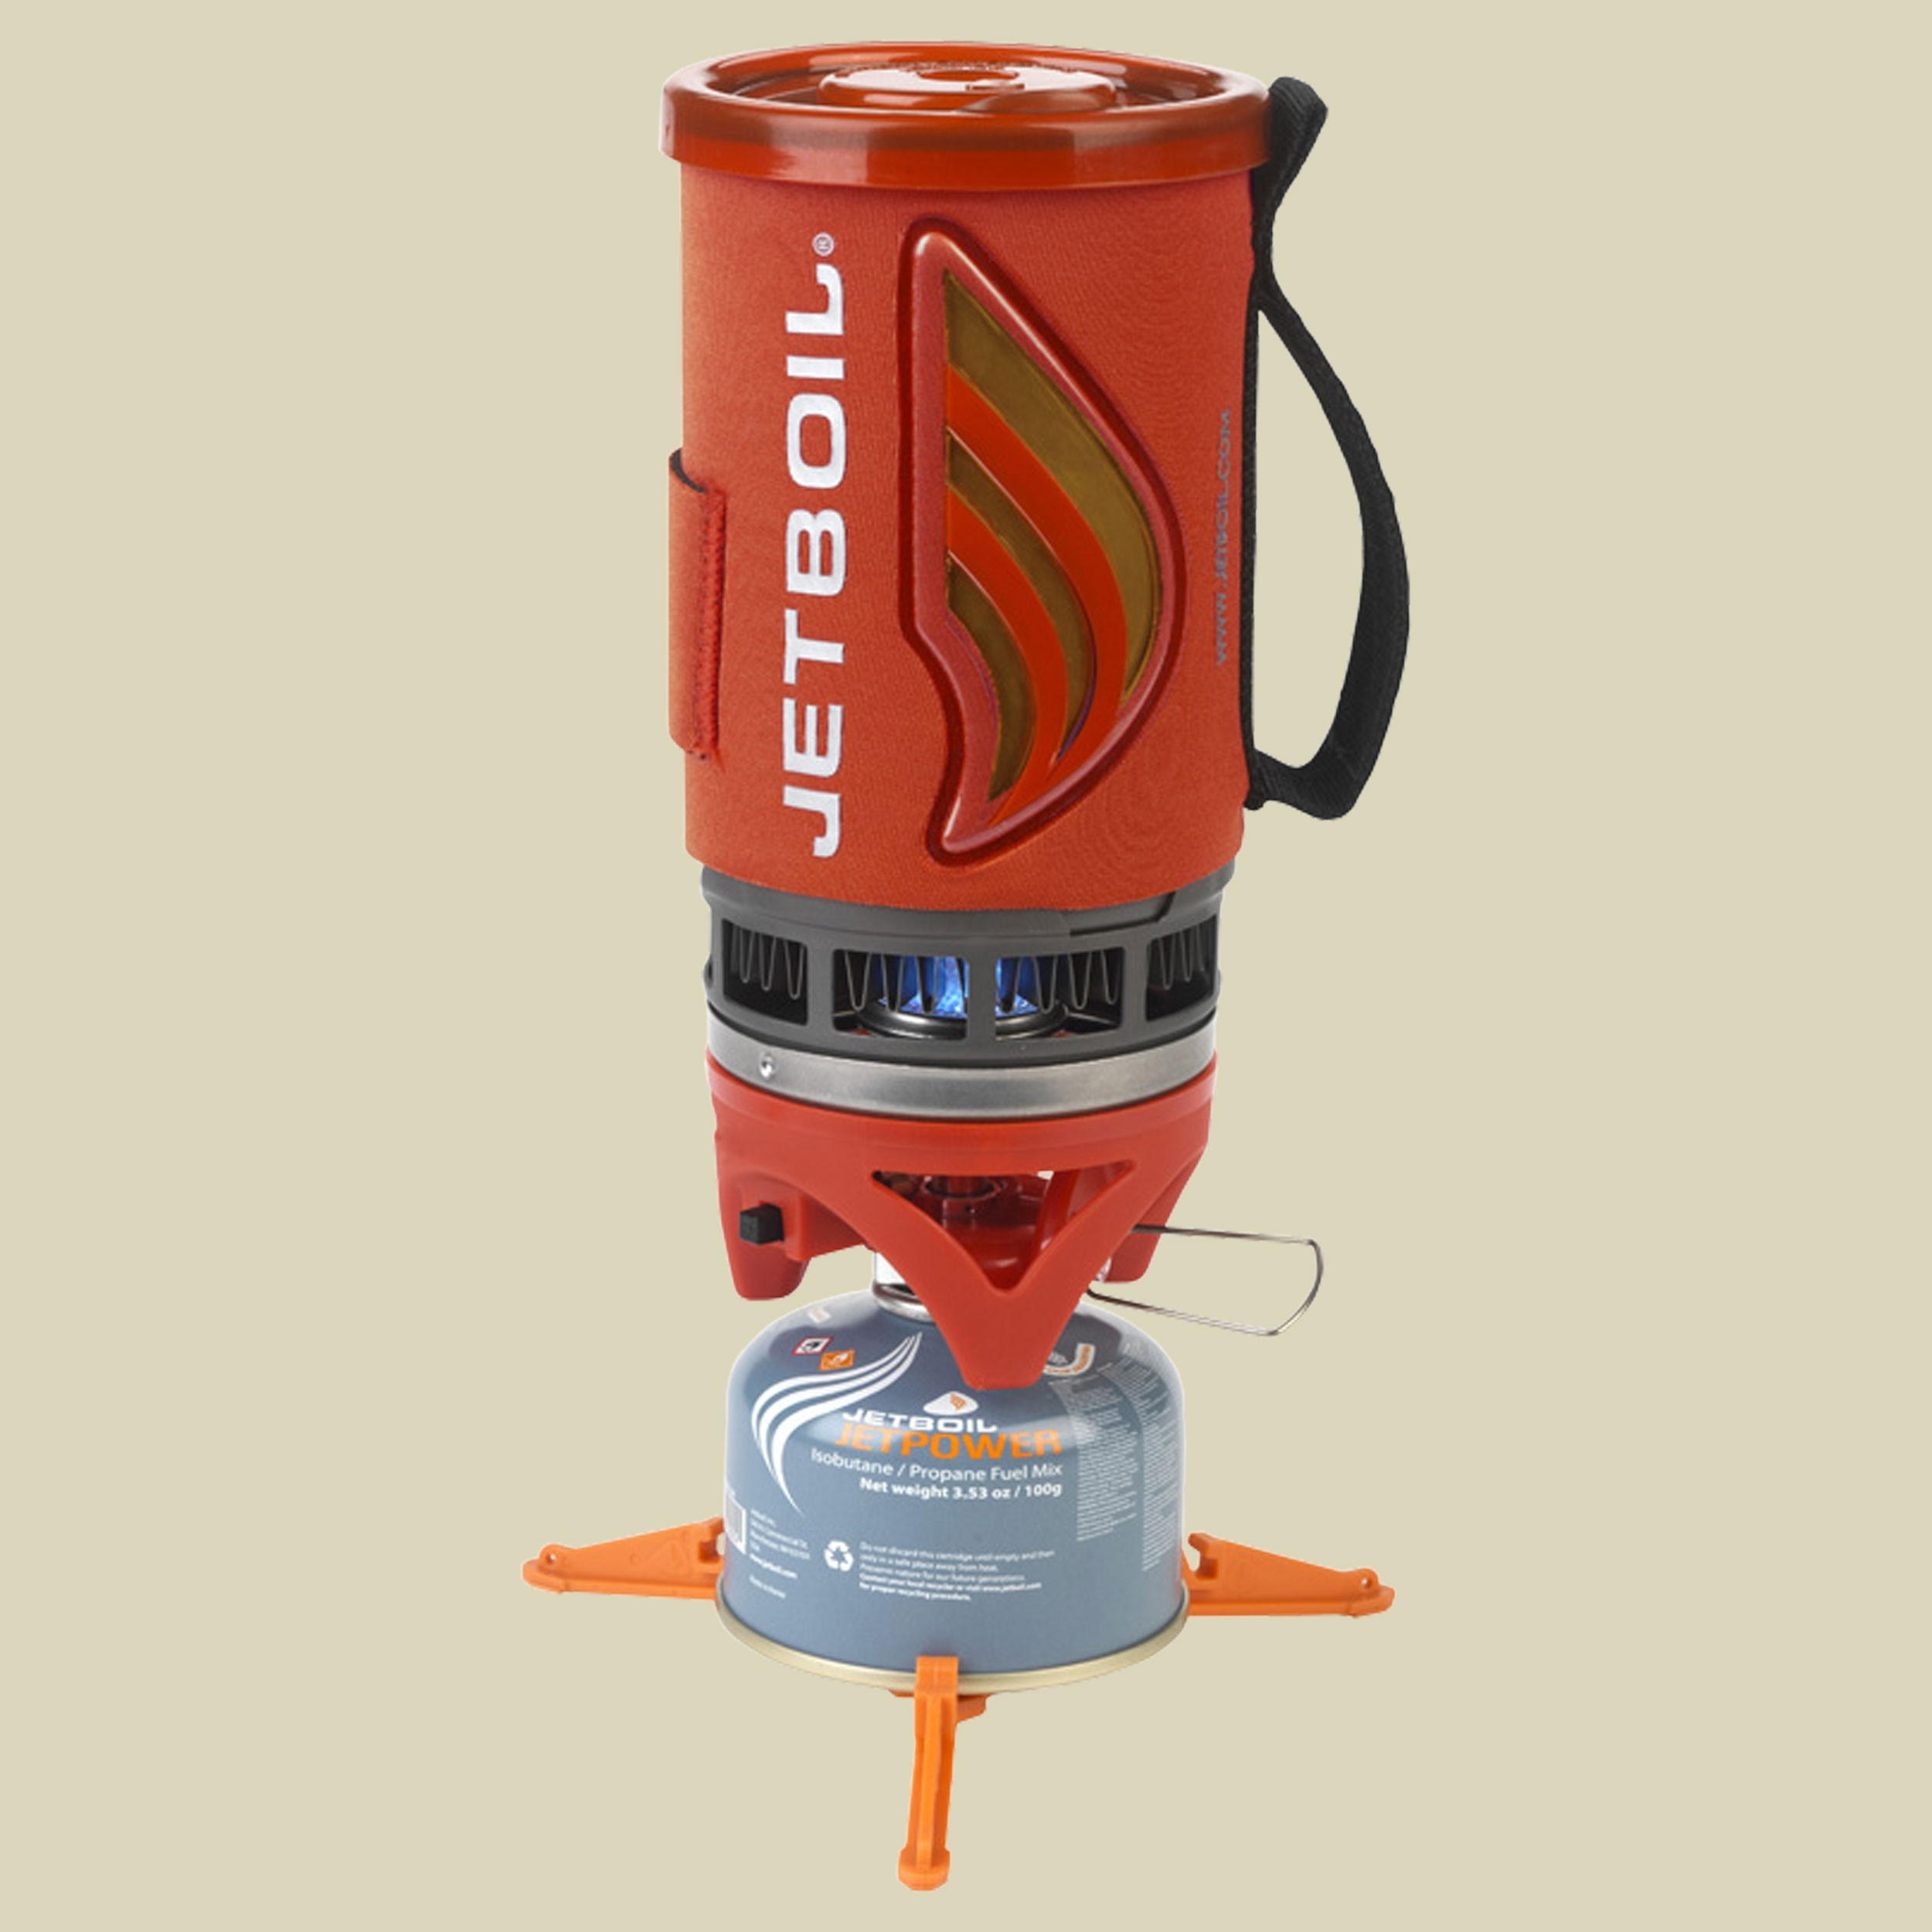 jetboil_kocher_FLASH_tomato_red_fallback.jpg